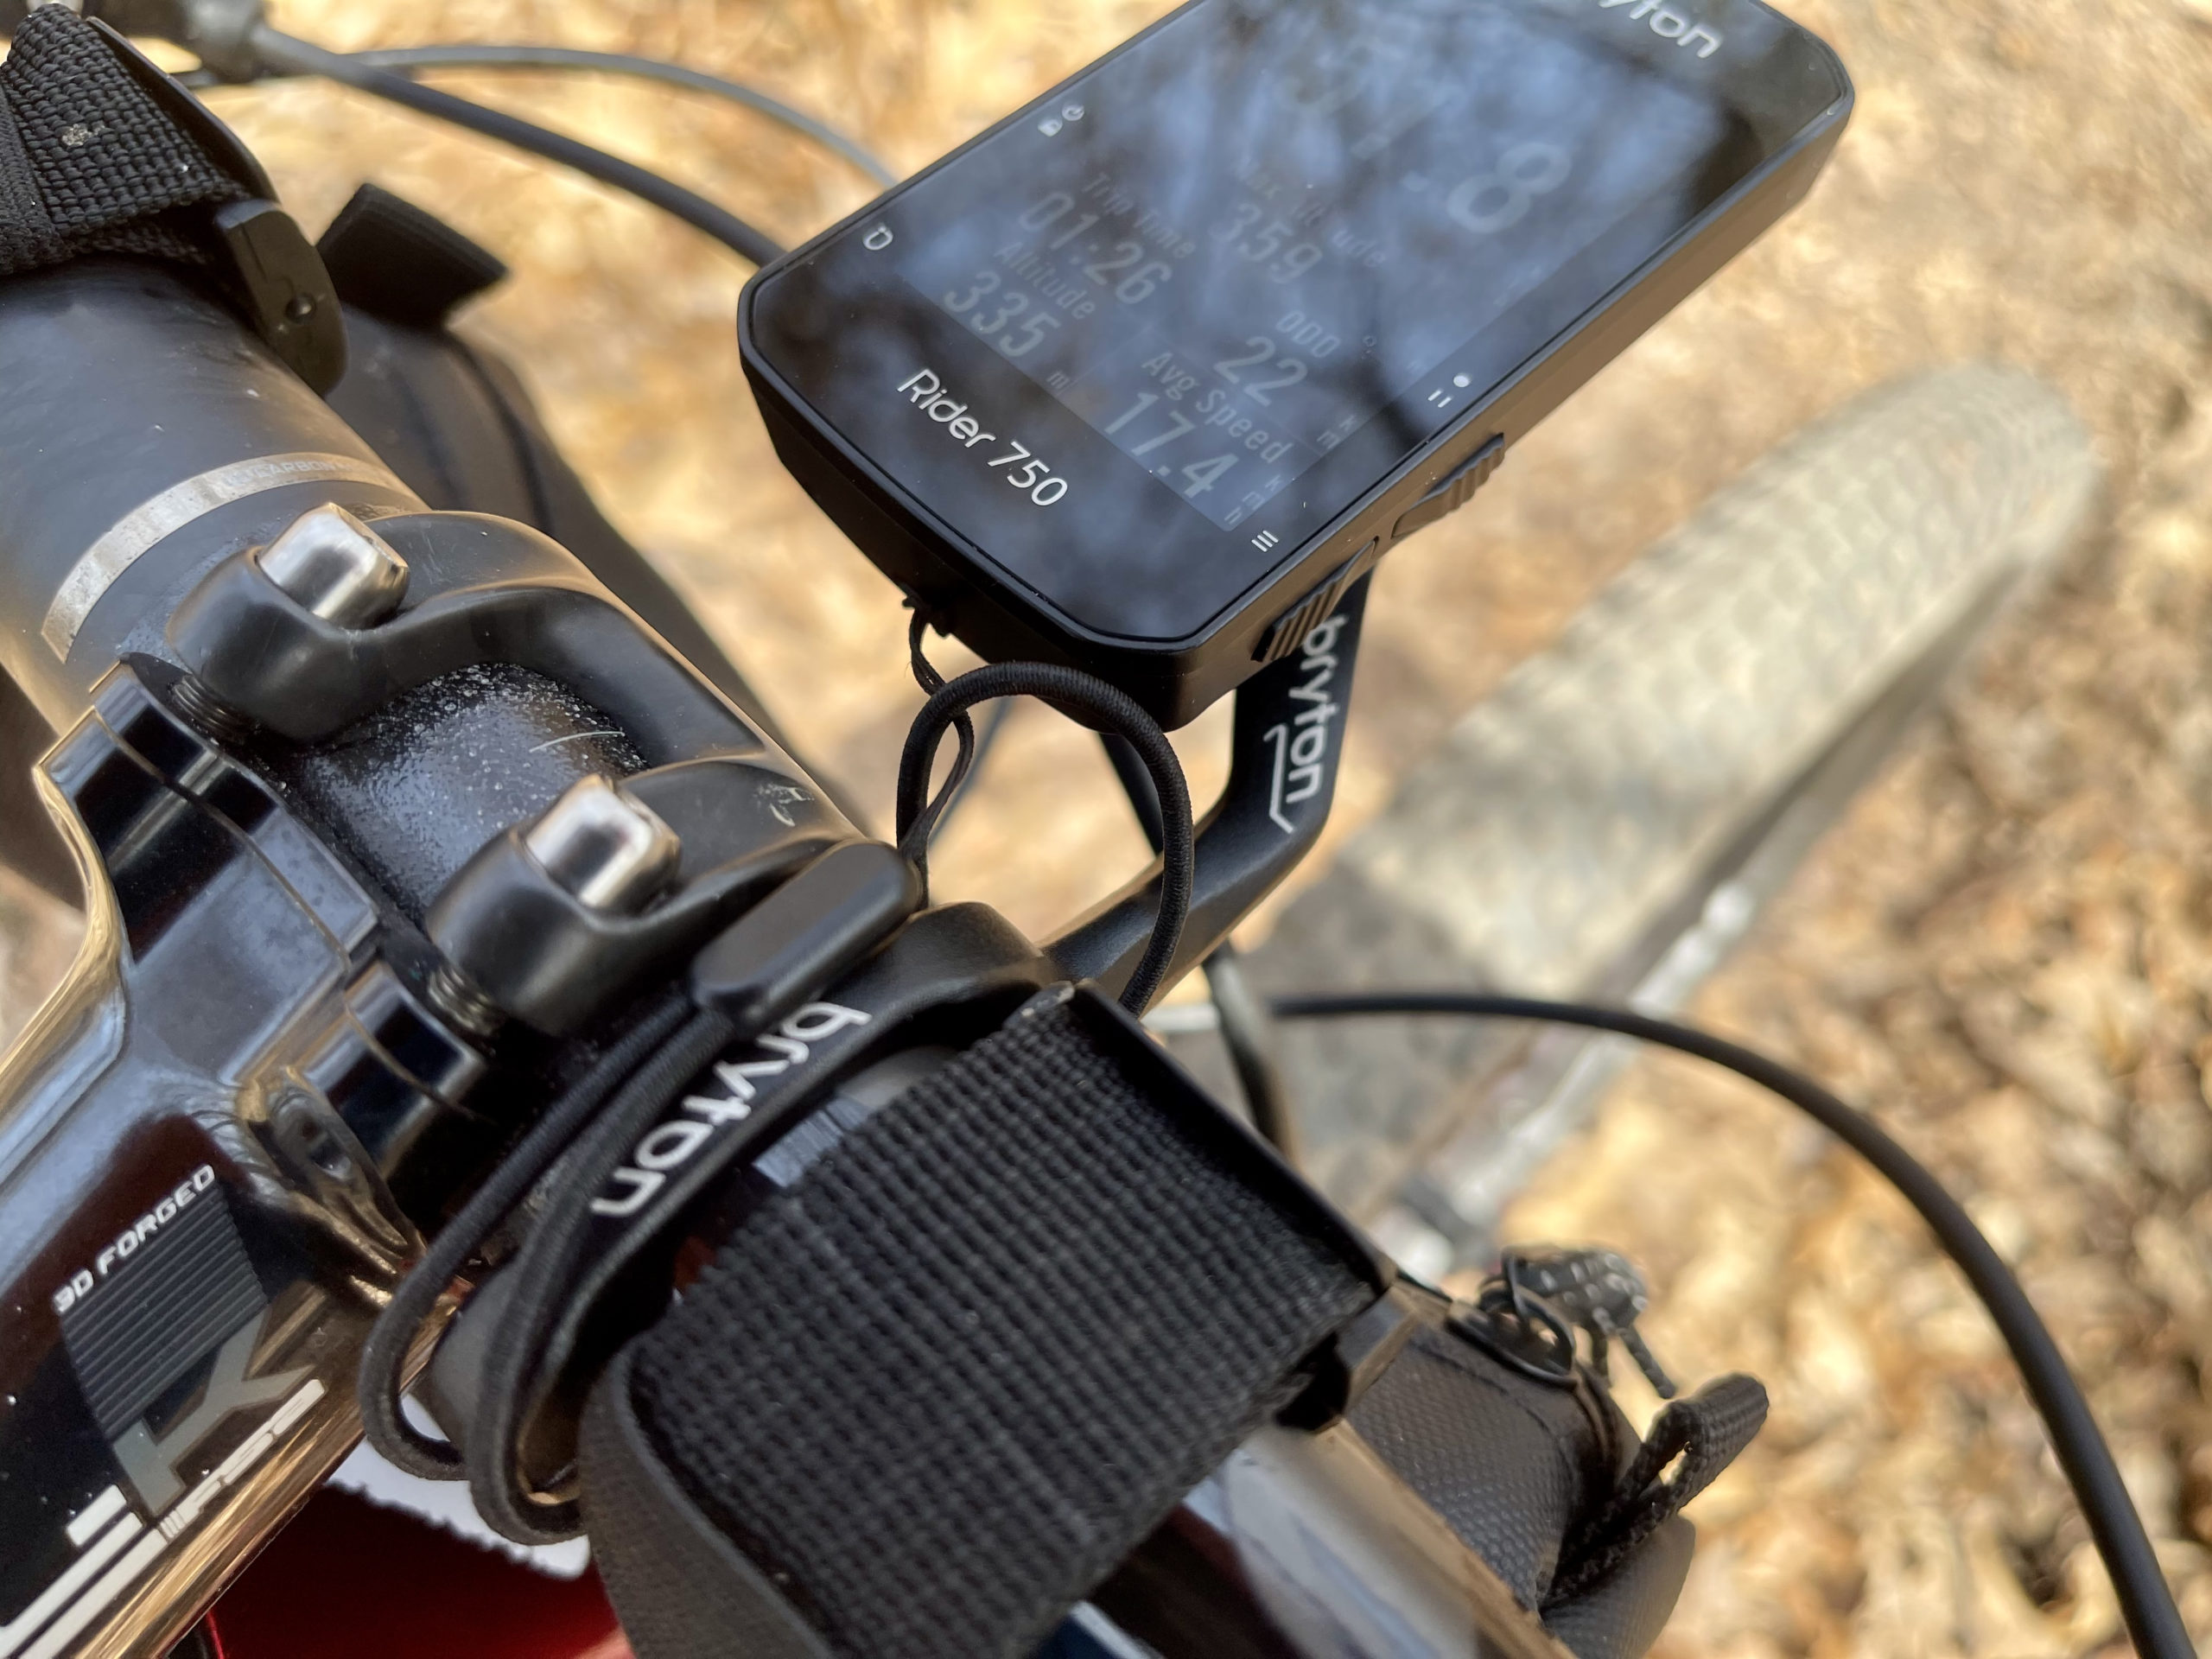 Bryton Rider 750 Review clamp